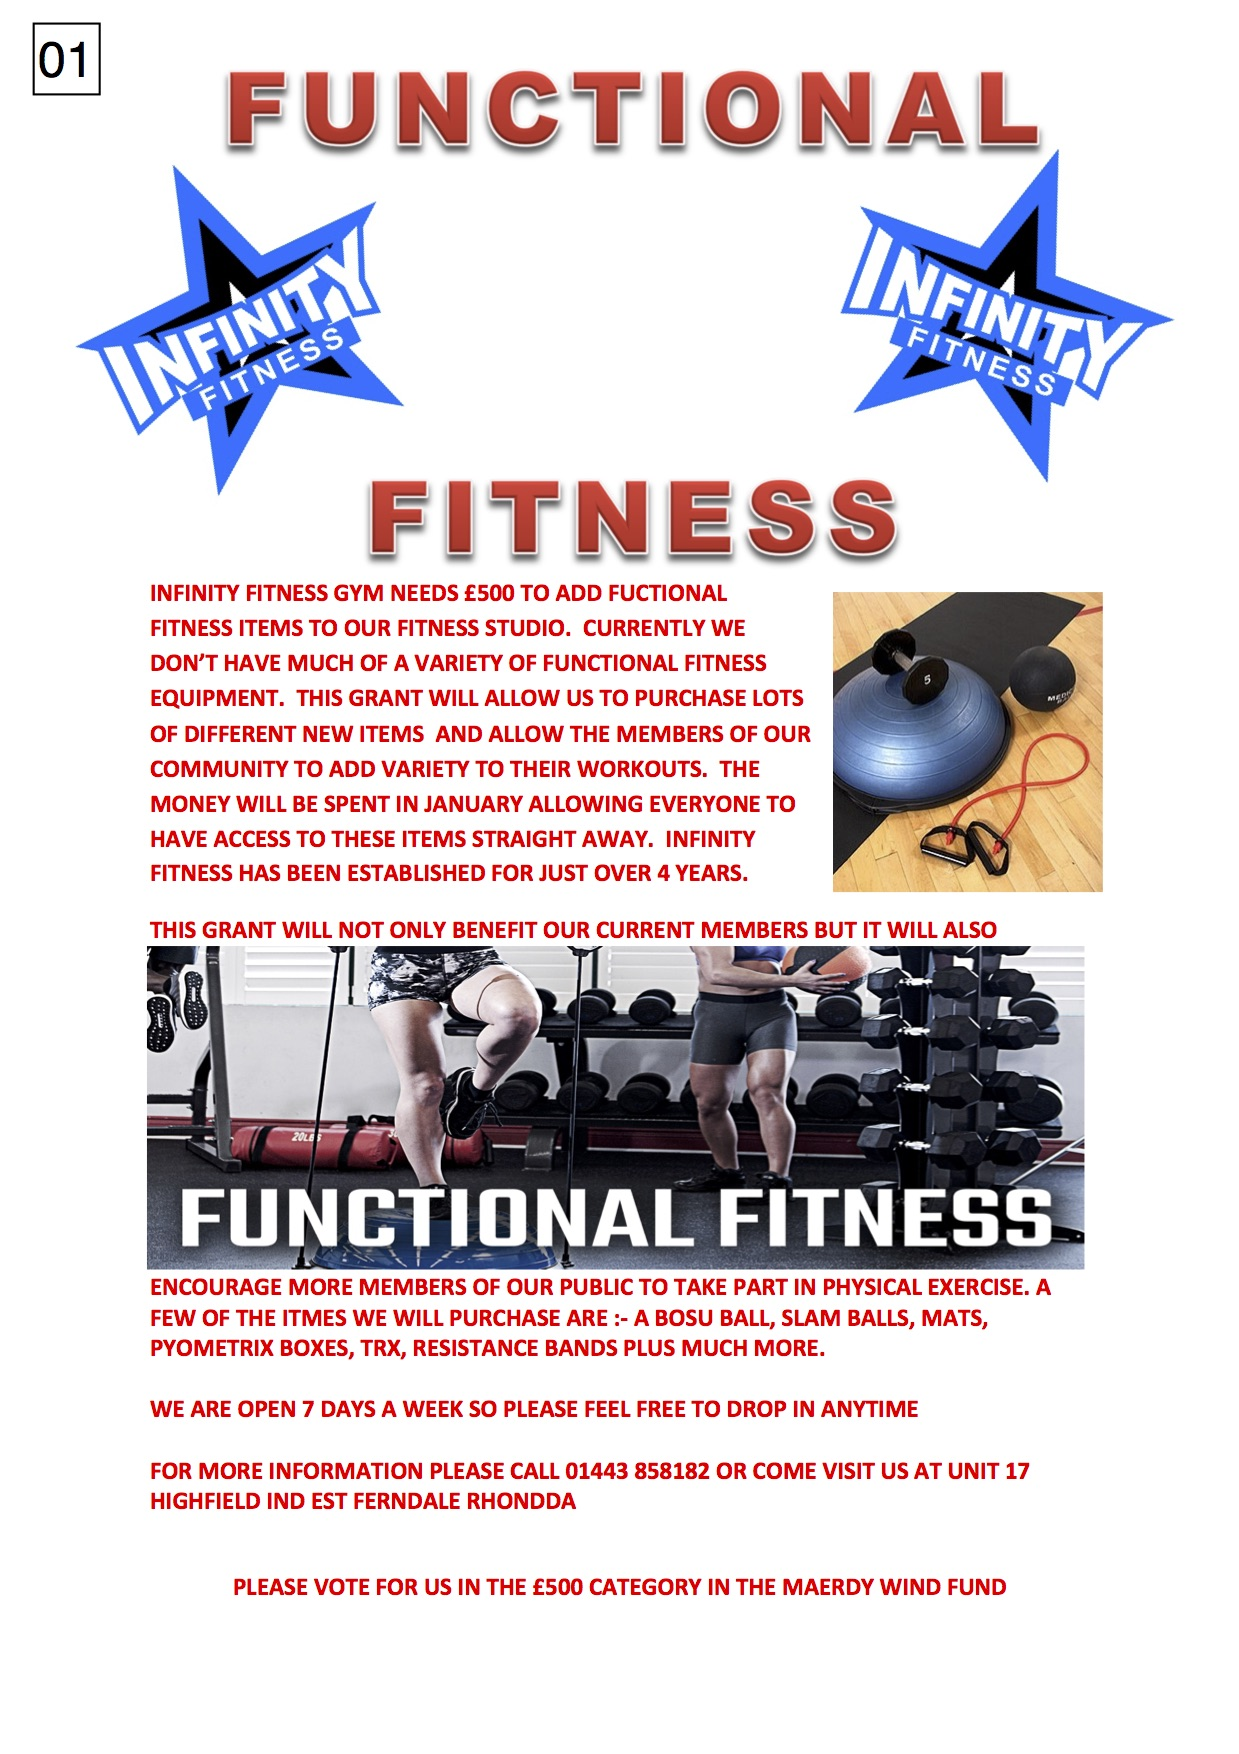 01._INFINITY_Fitness_-_POSTER_£500_-_120917